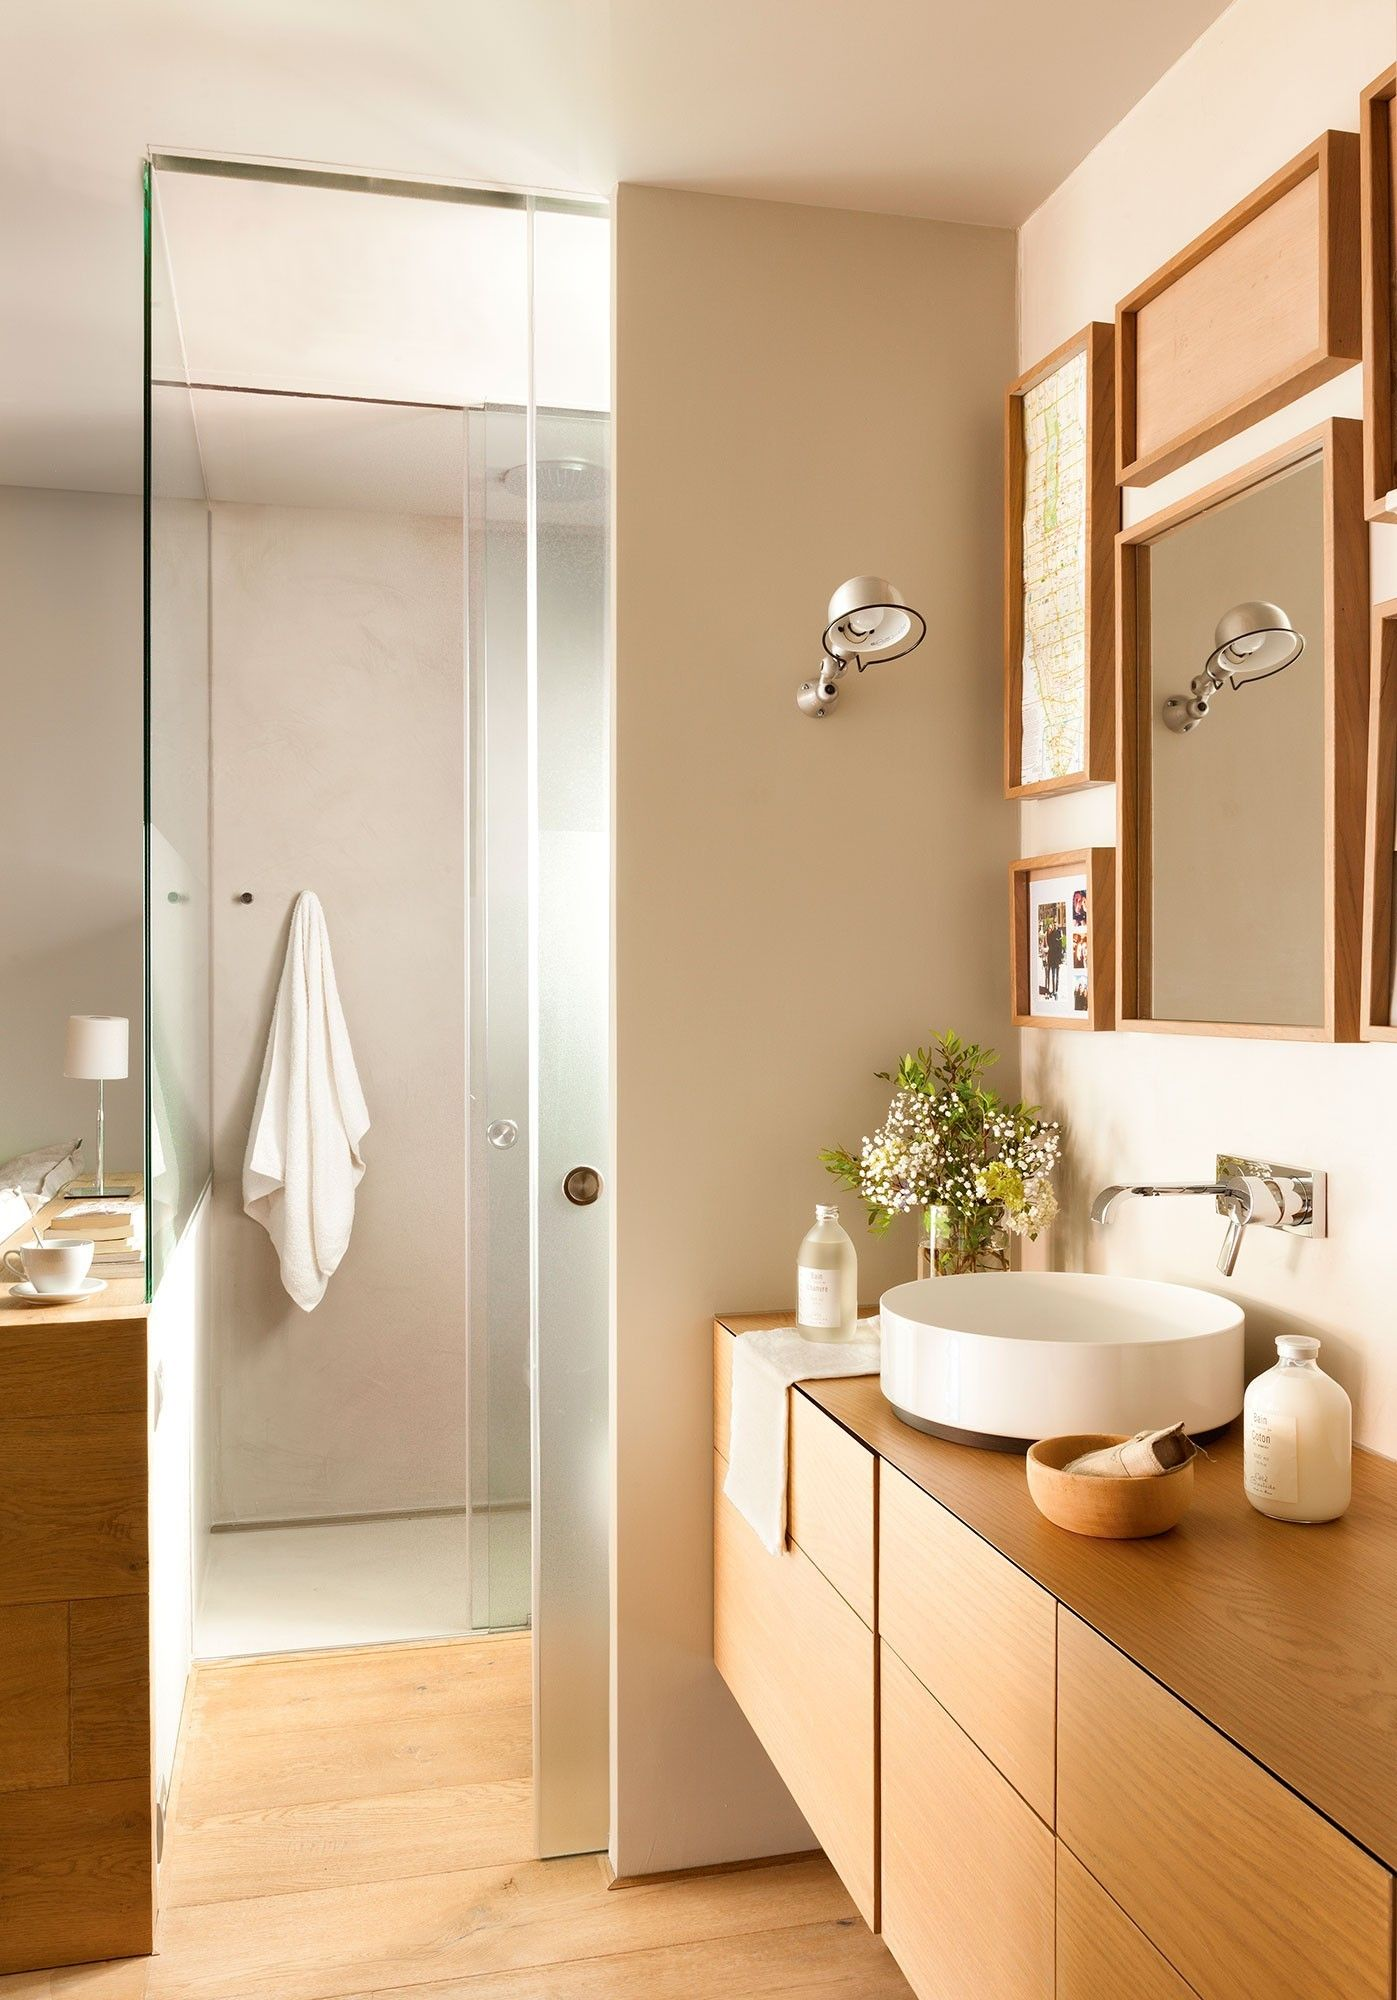 Newer, waterproof products allow a glass wall between the